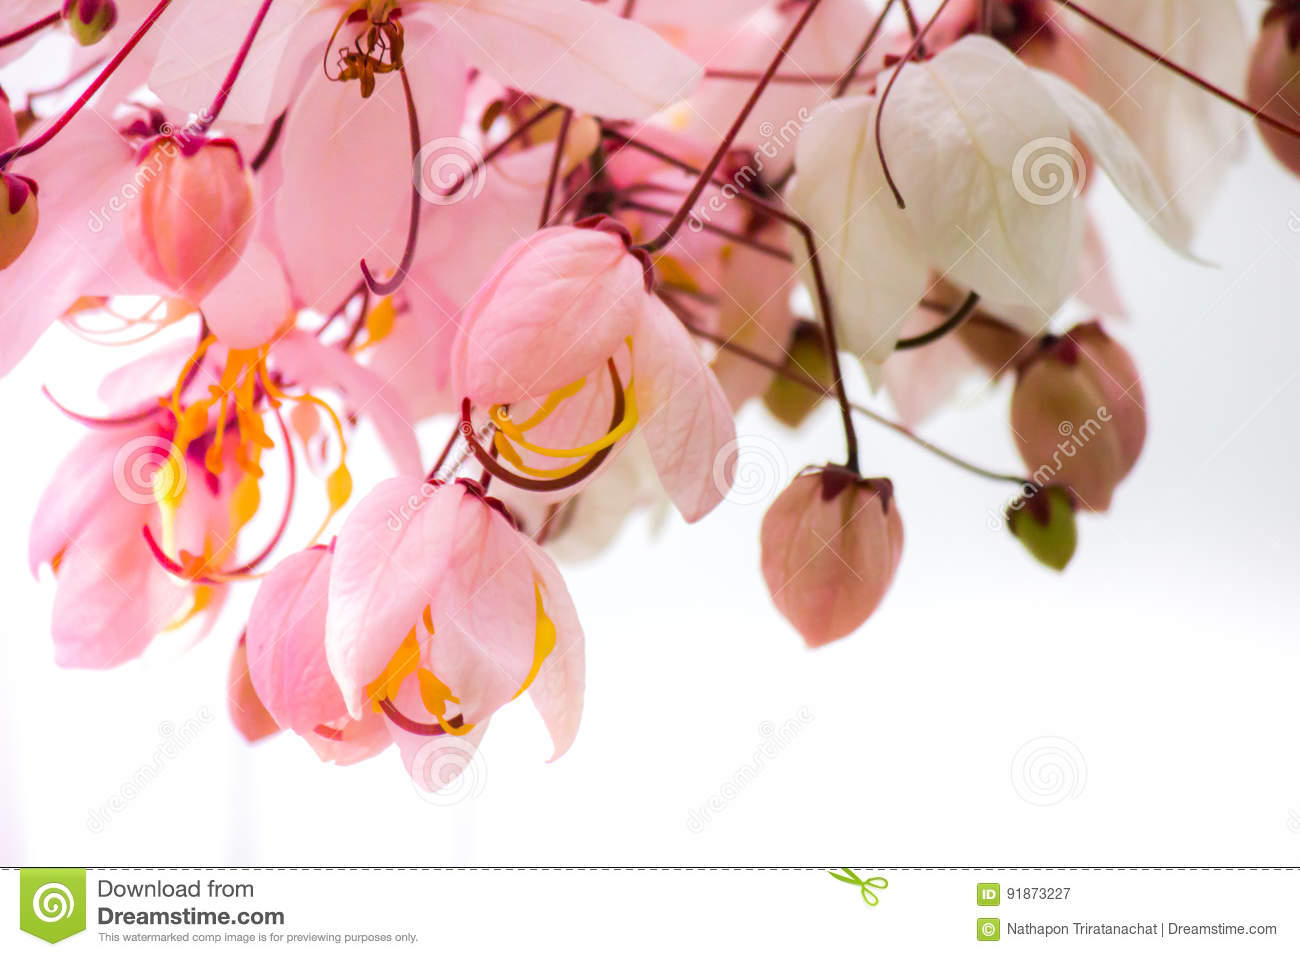 Lovely Flowers Of Cassia Bakeriana Craib Or Pink Shower Tree In